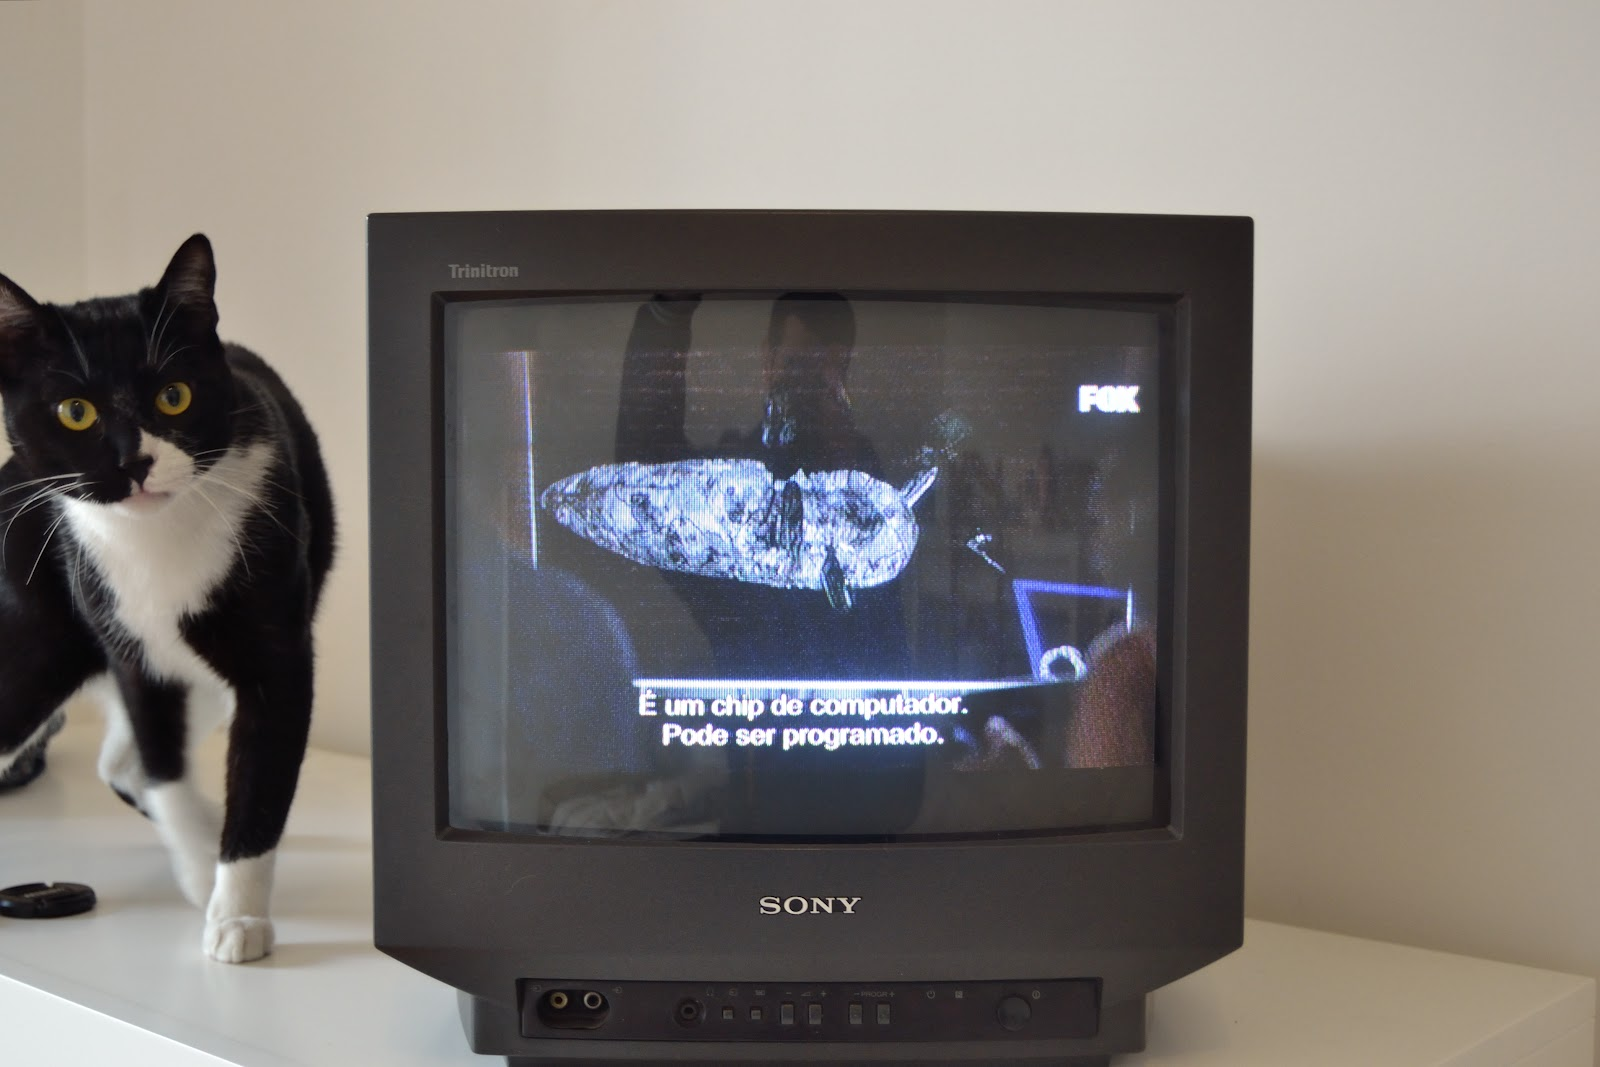 Tech Gore Galore: DISASSEMBLY and REPAIR: Sony Triniton CRT TV model  KV-14M1E